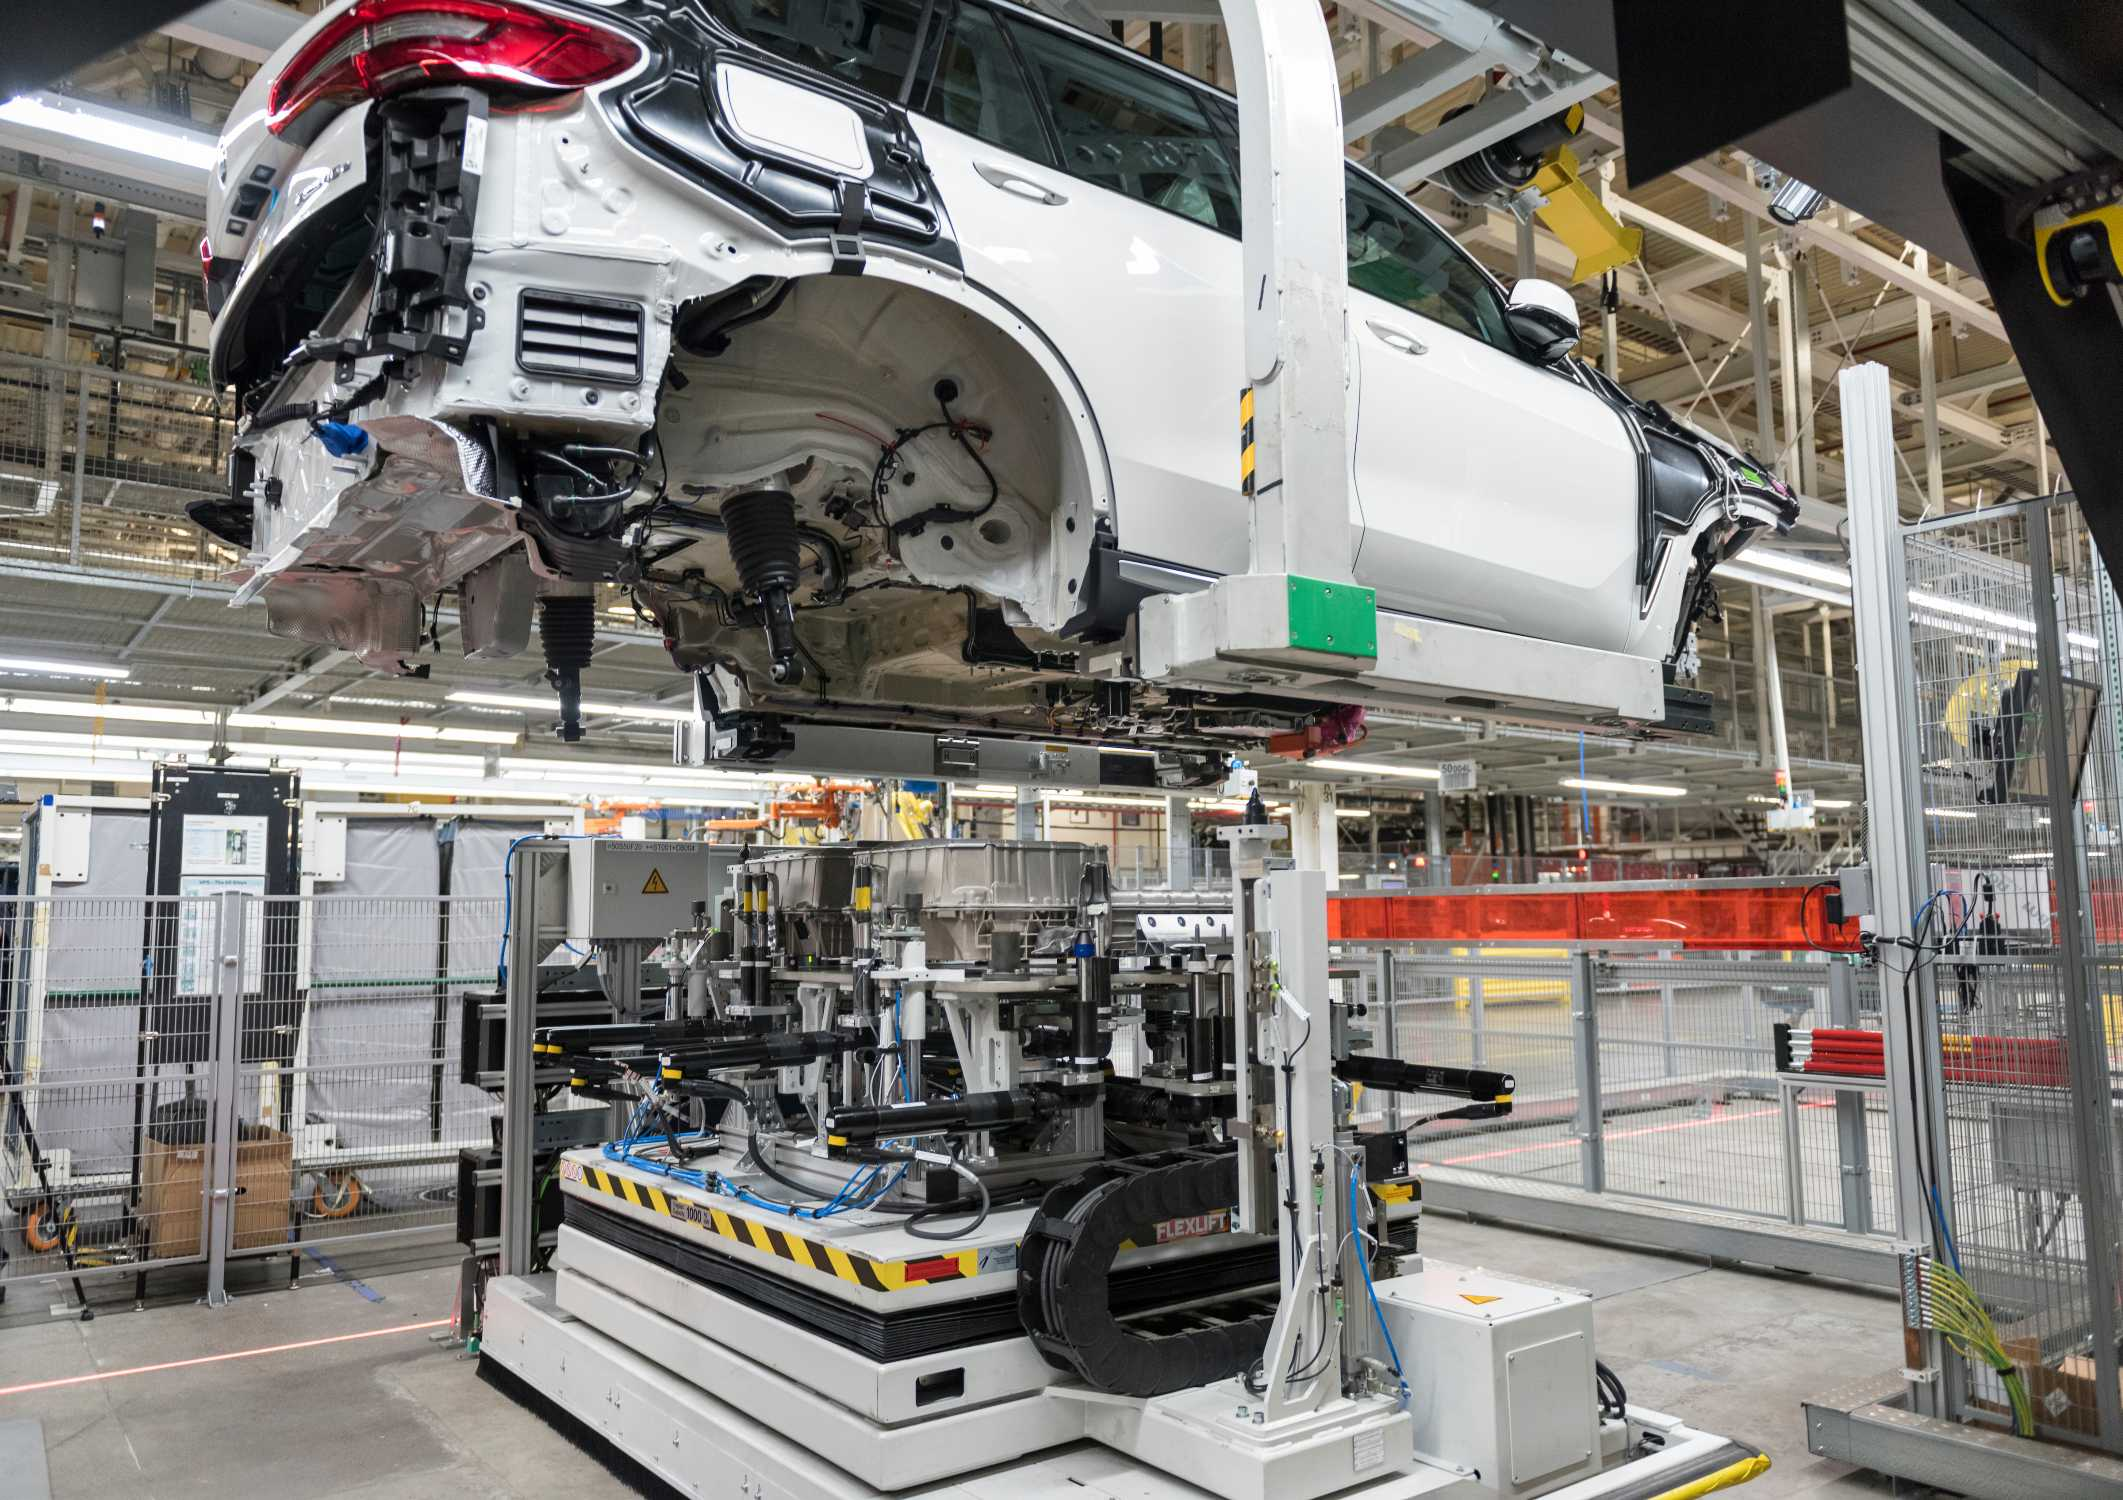 Bmw Group Plant Spartanburg More Than Doubles Capacity For Battery Assembly 2020 Bmw X5 Xdrive45e Plug In Hybrid Electric Vehicle Begins Production In Spartanburg Sc On August 1